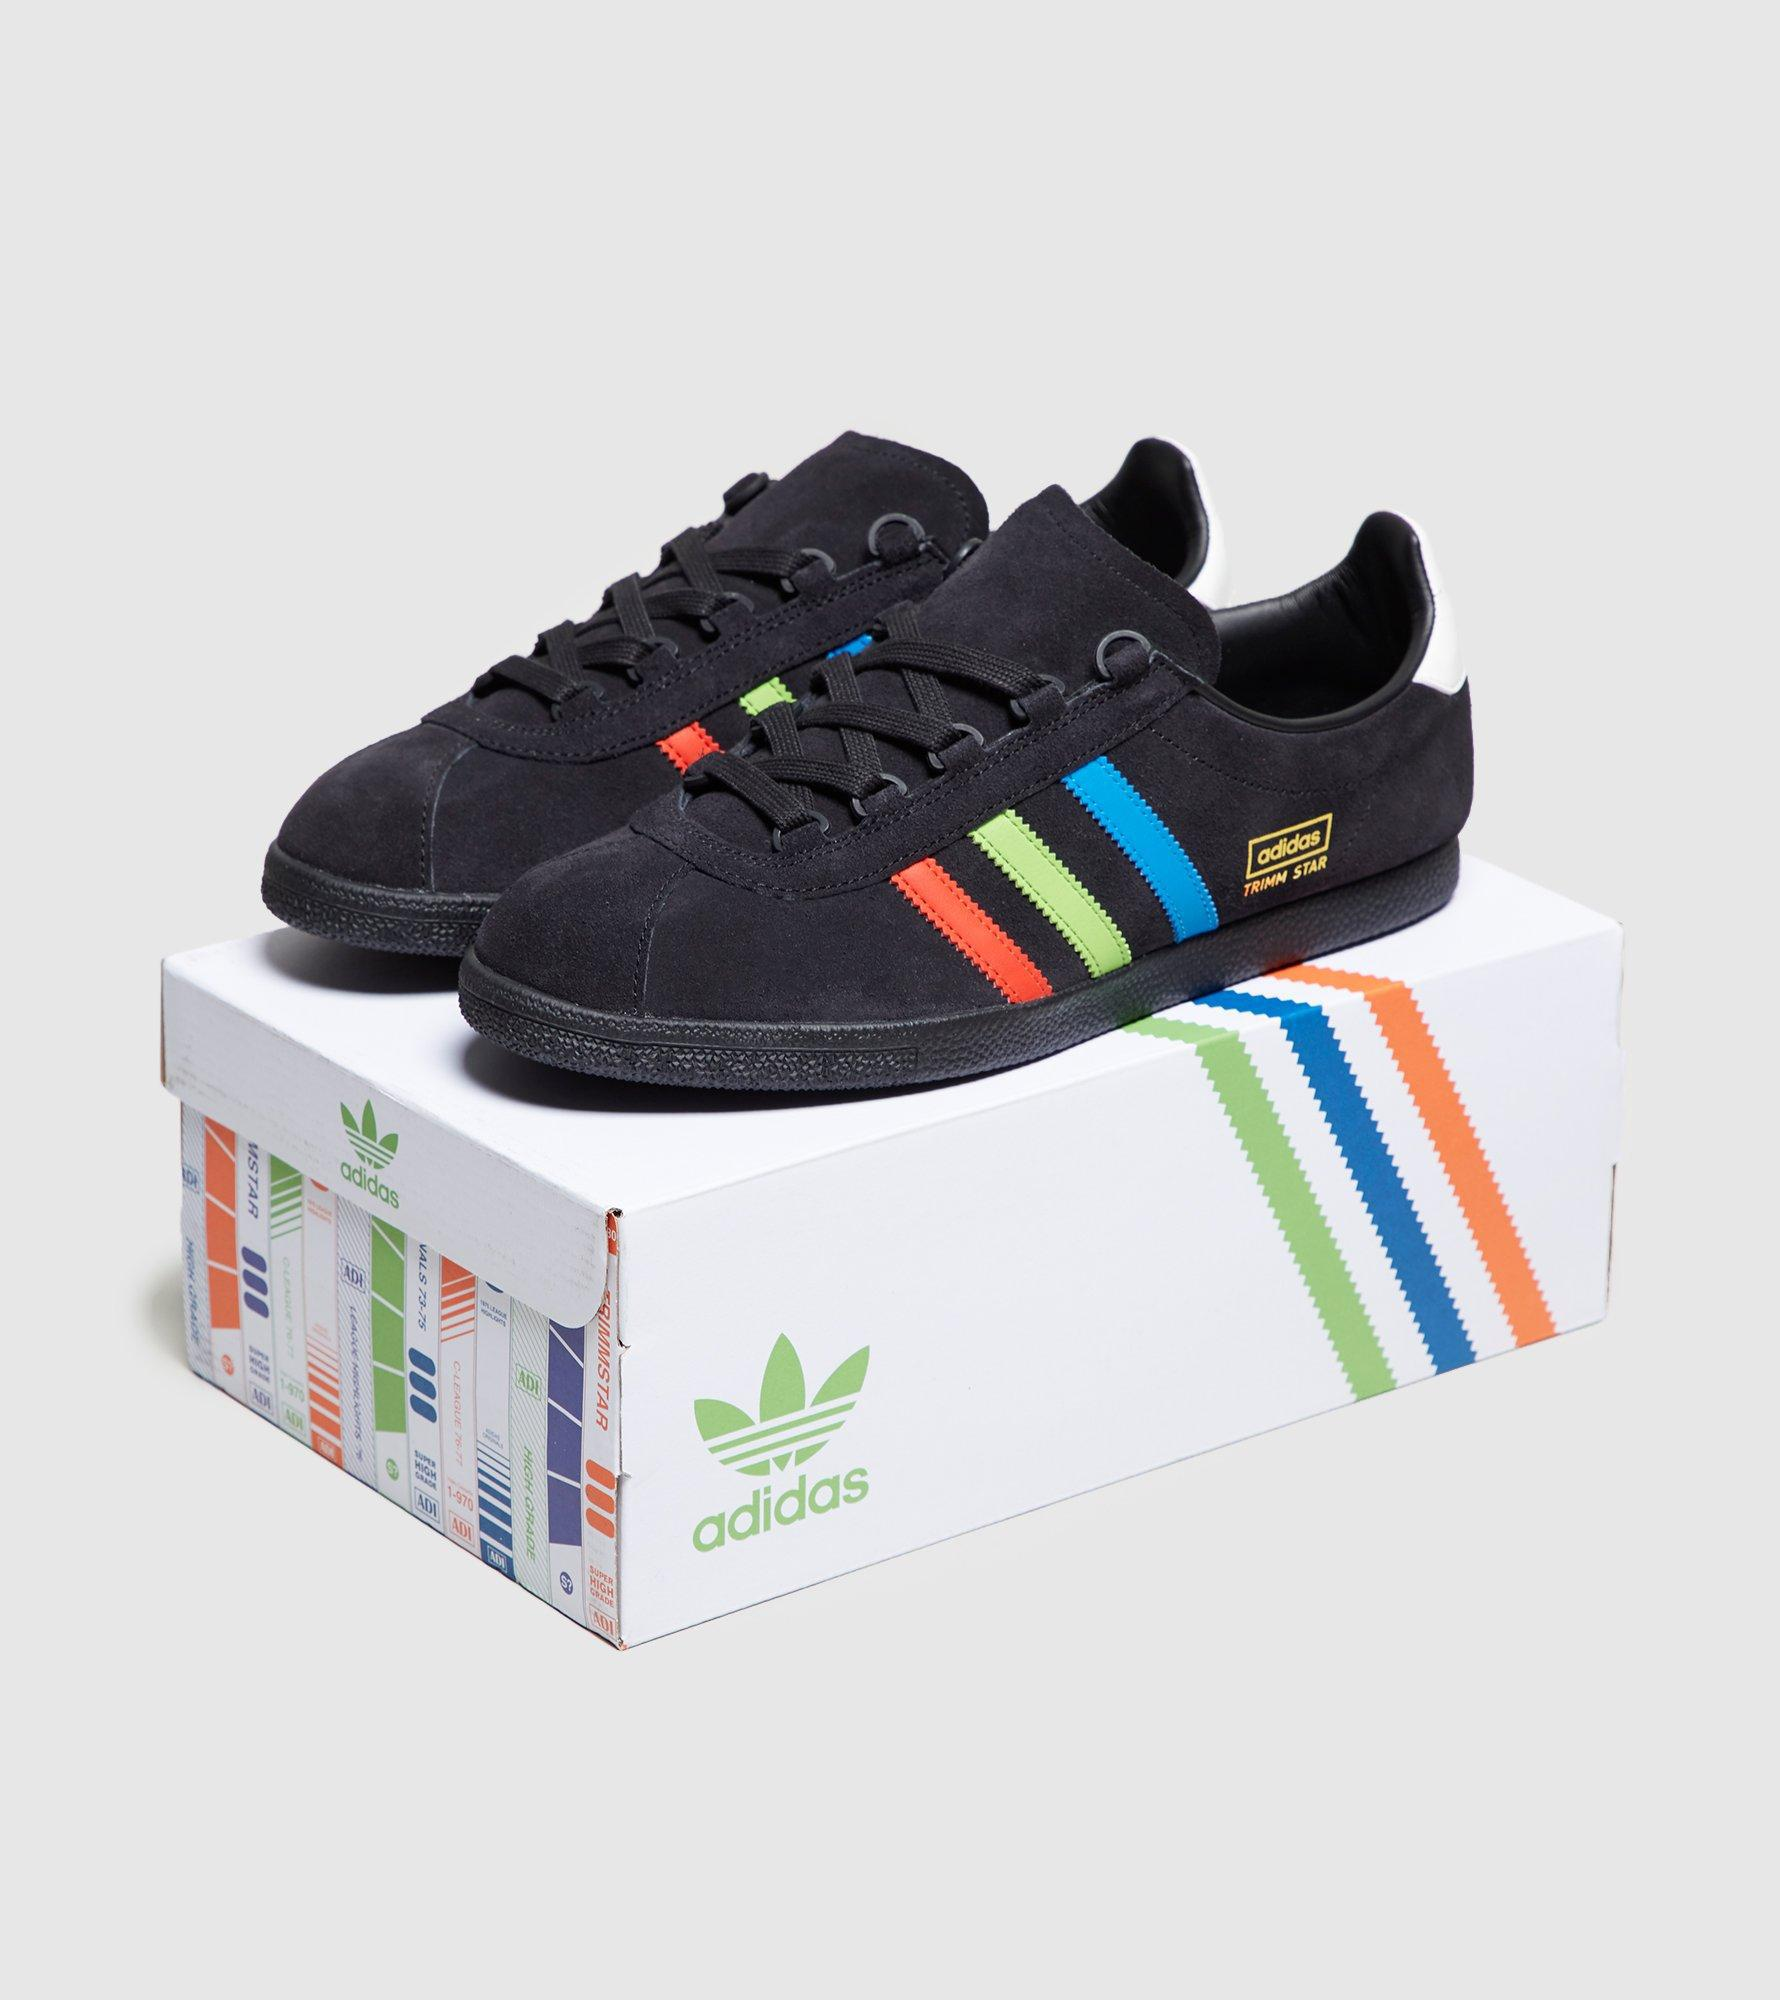 adidas Originals Trimm Star  vhs  - Size  Exclusive in Black for Men ... b1b18633d